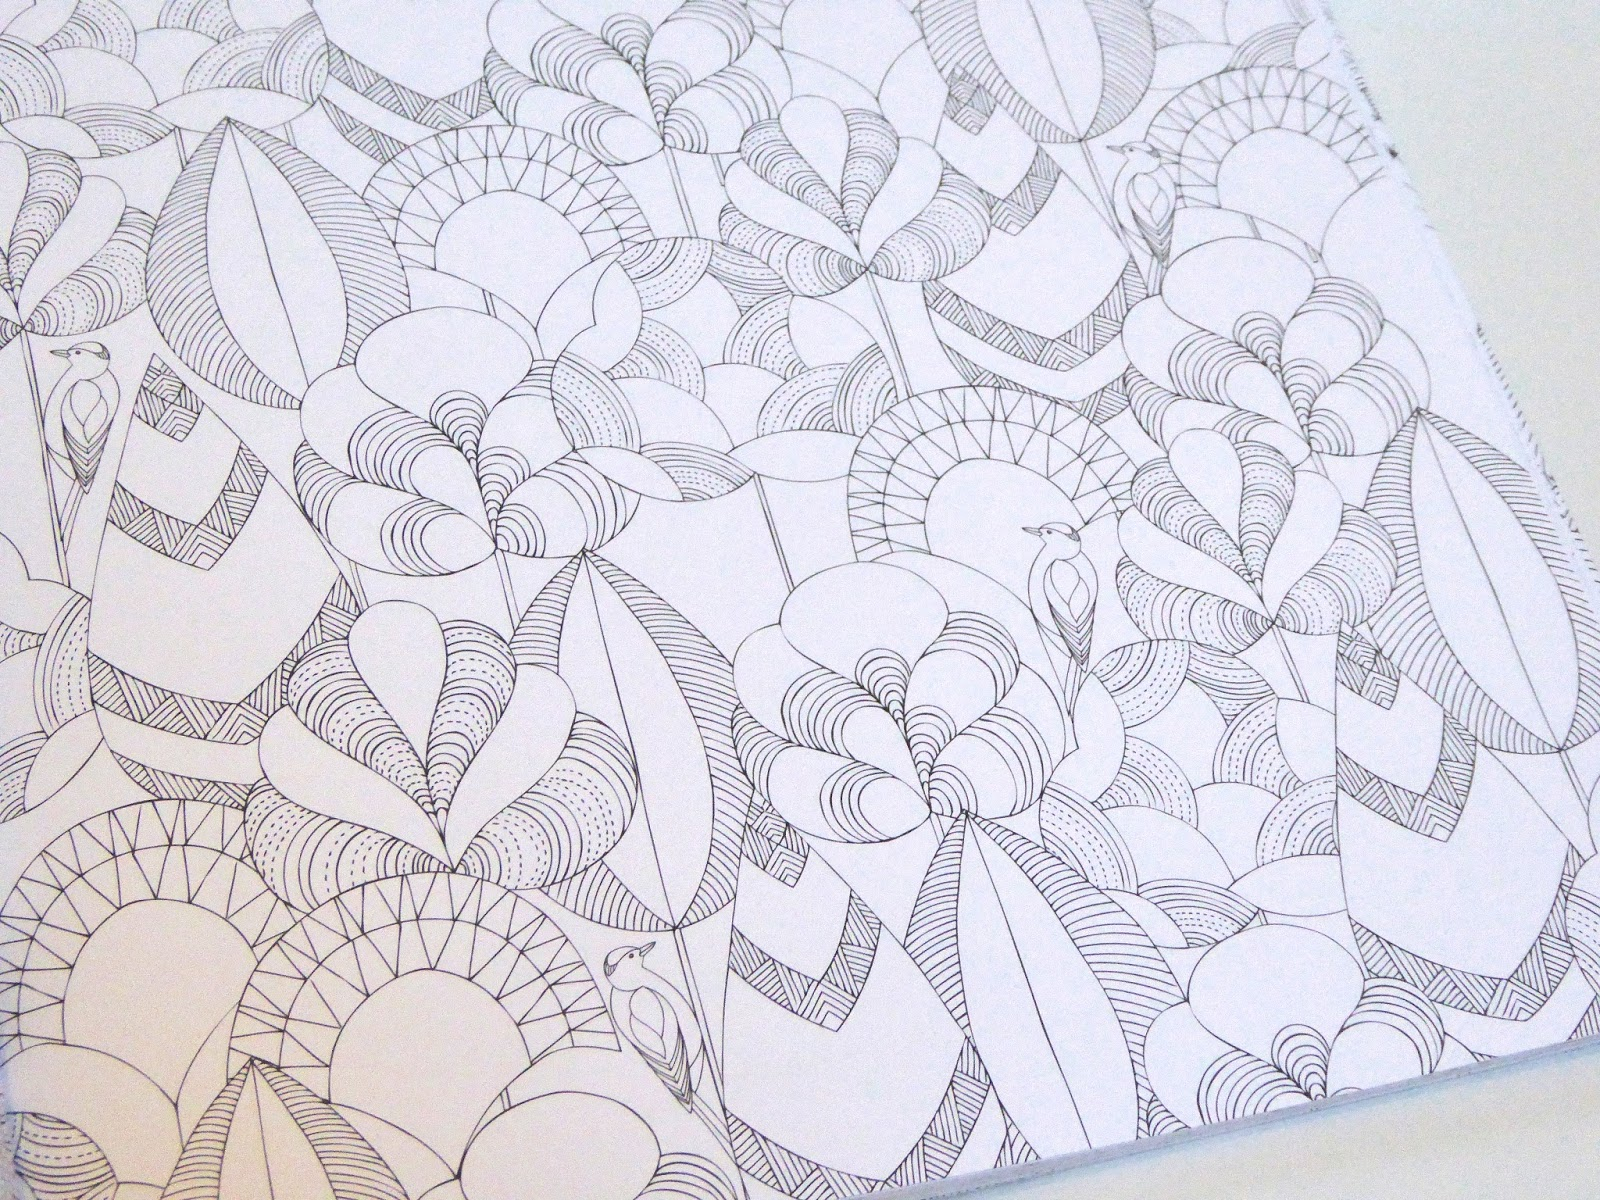 Animal Kingdom Colouring Book Malaysia Review Millie Marotta S Adult